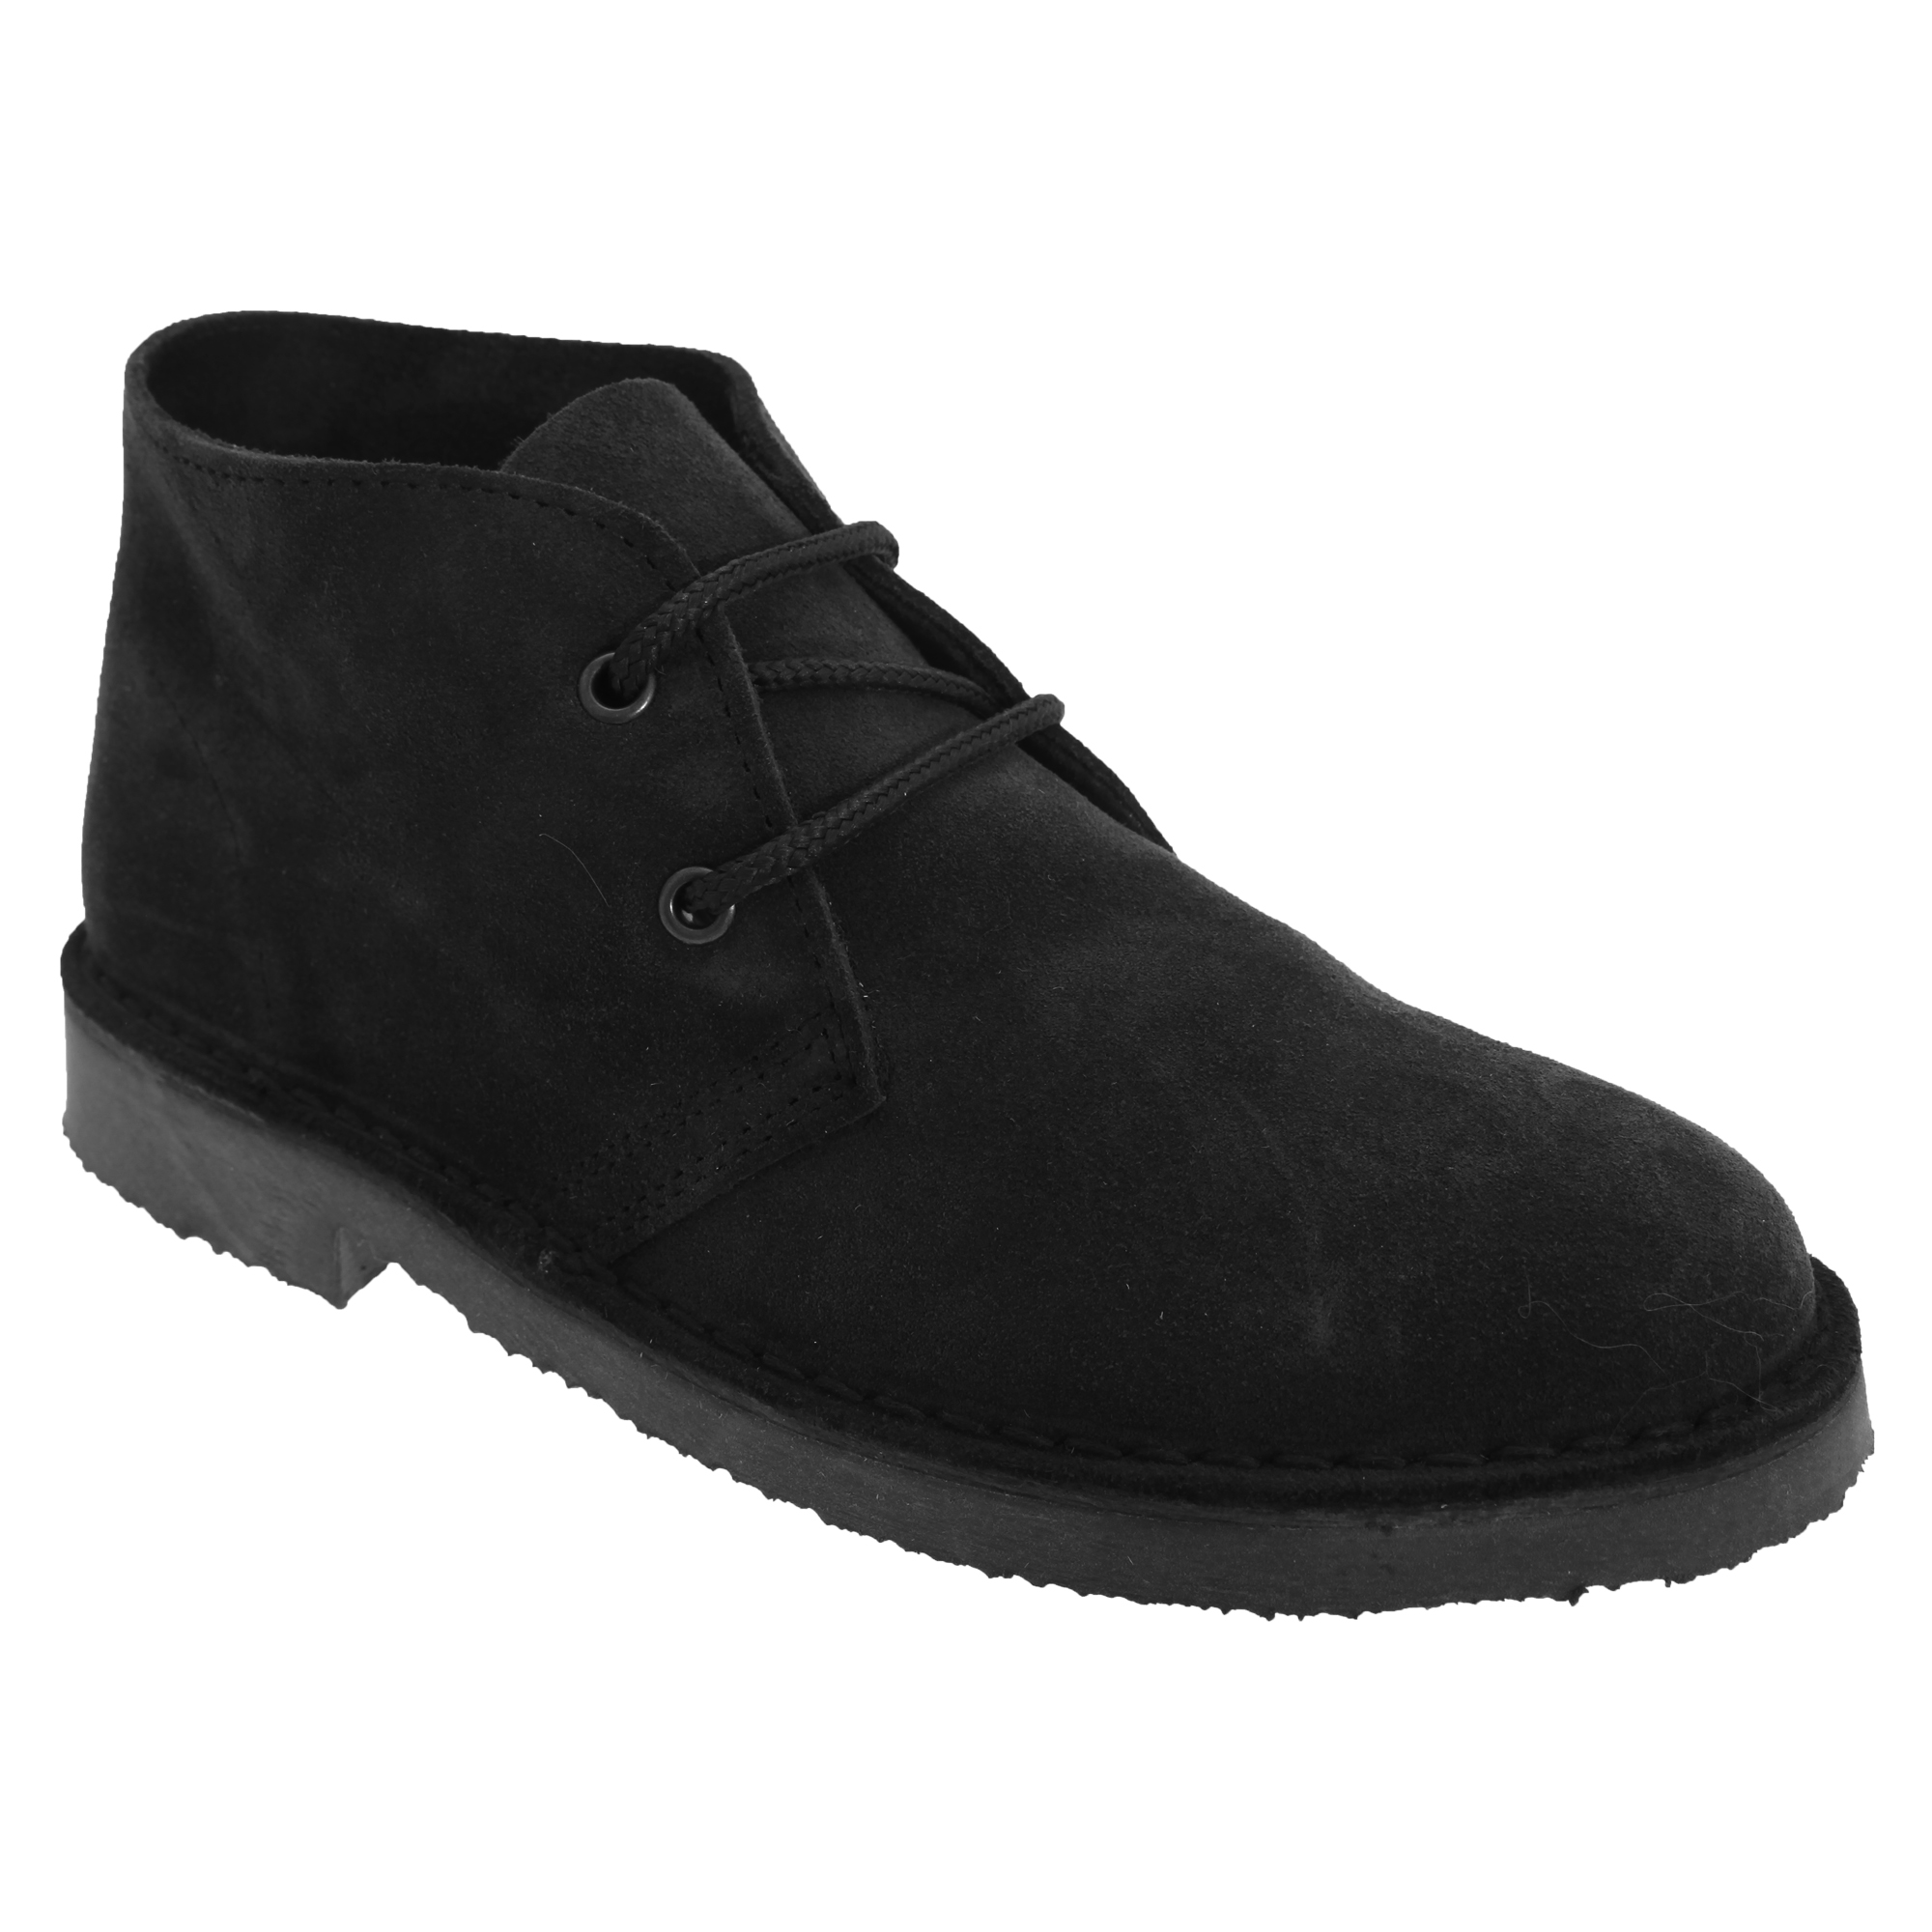 Roamers Adults Unisex Real Suede Unlined Desert Boots (15 UK) (Black)